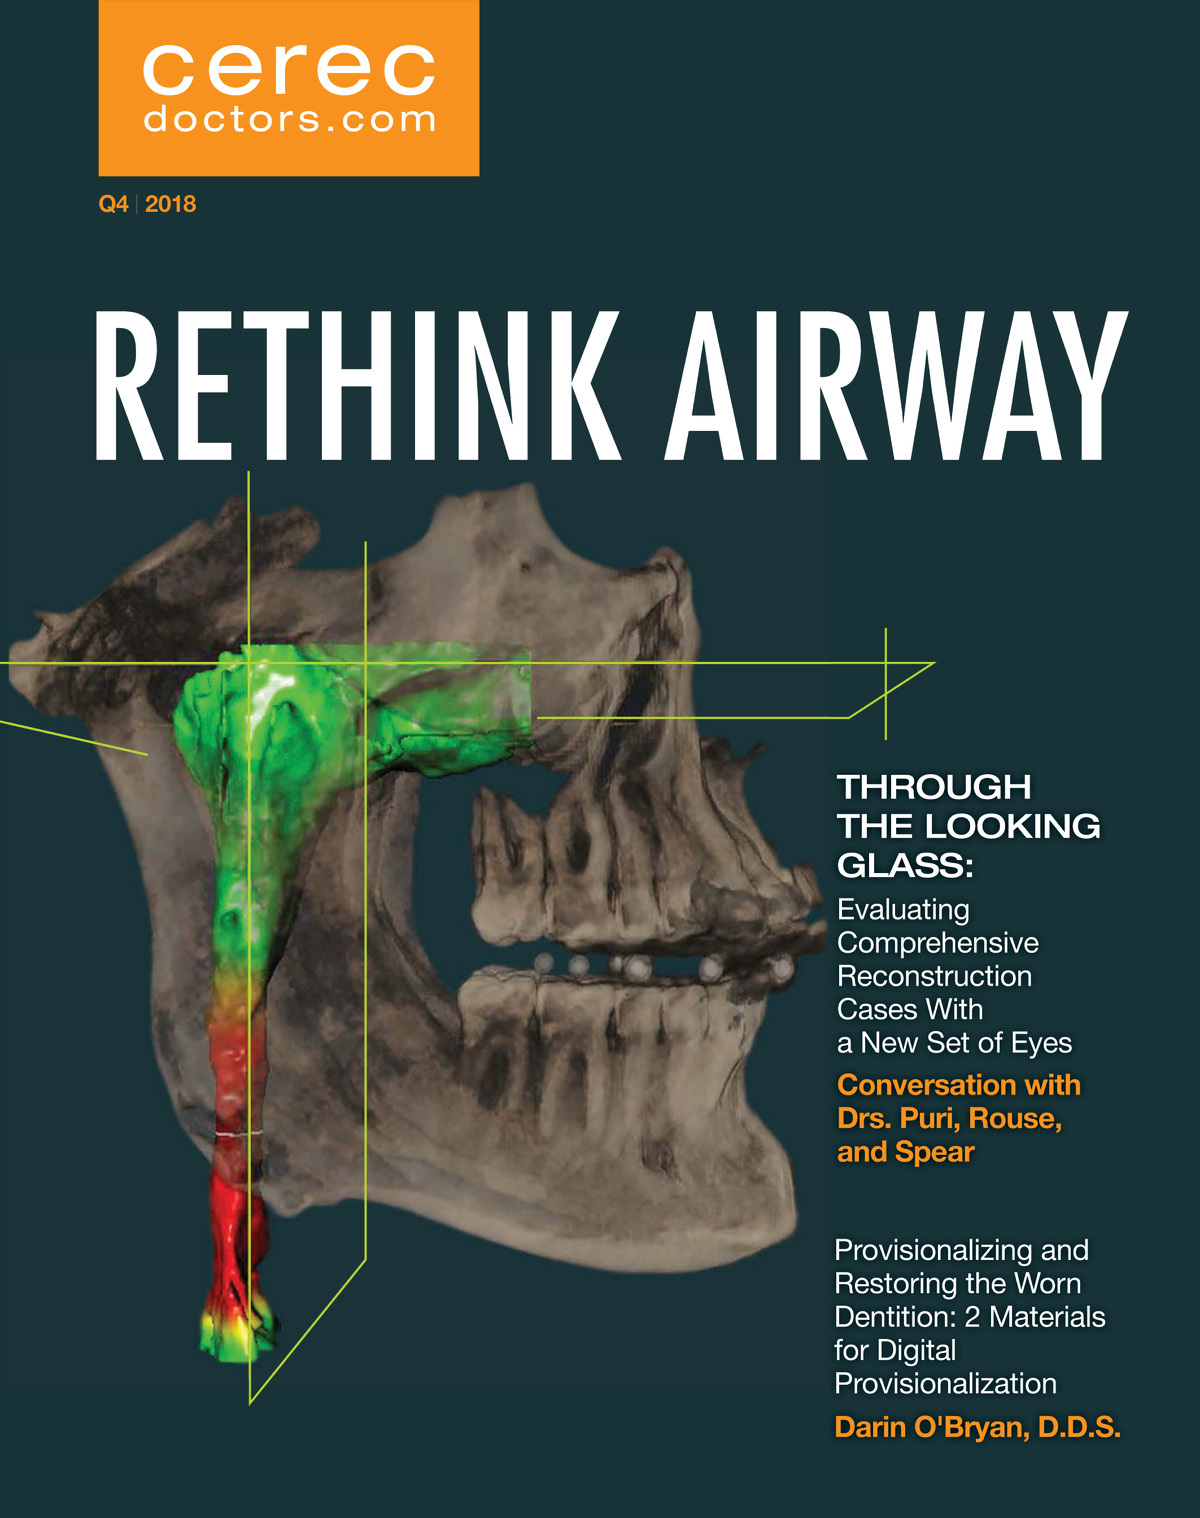 CEREC Magazine - Q4 2018